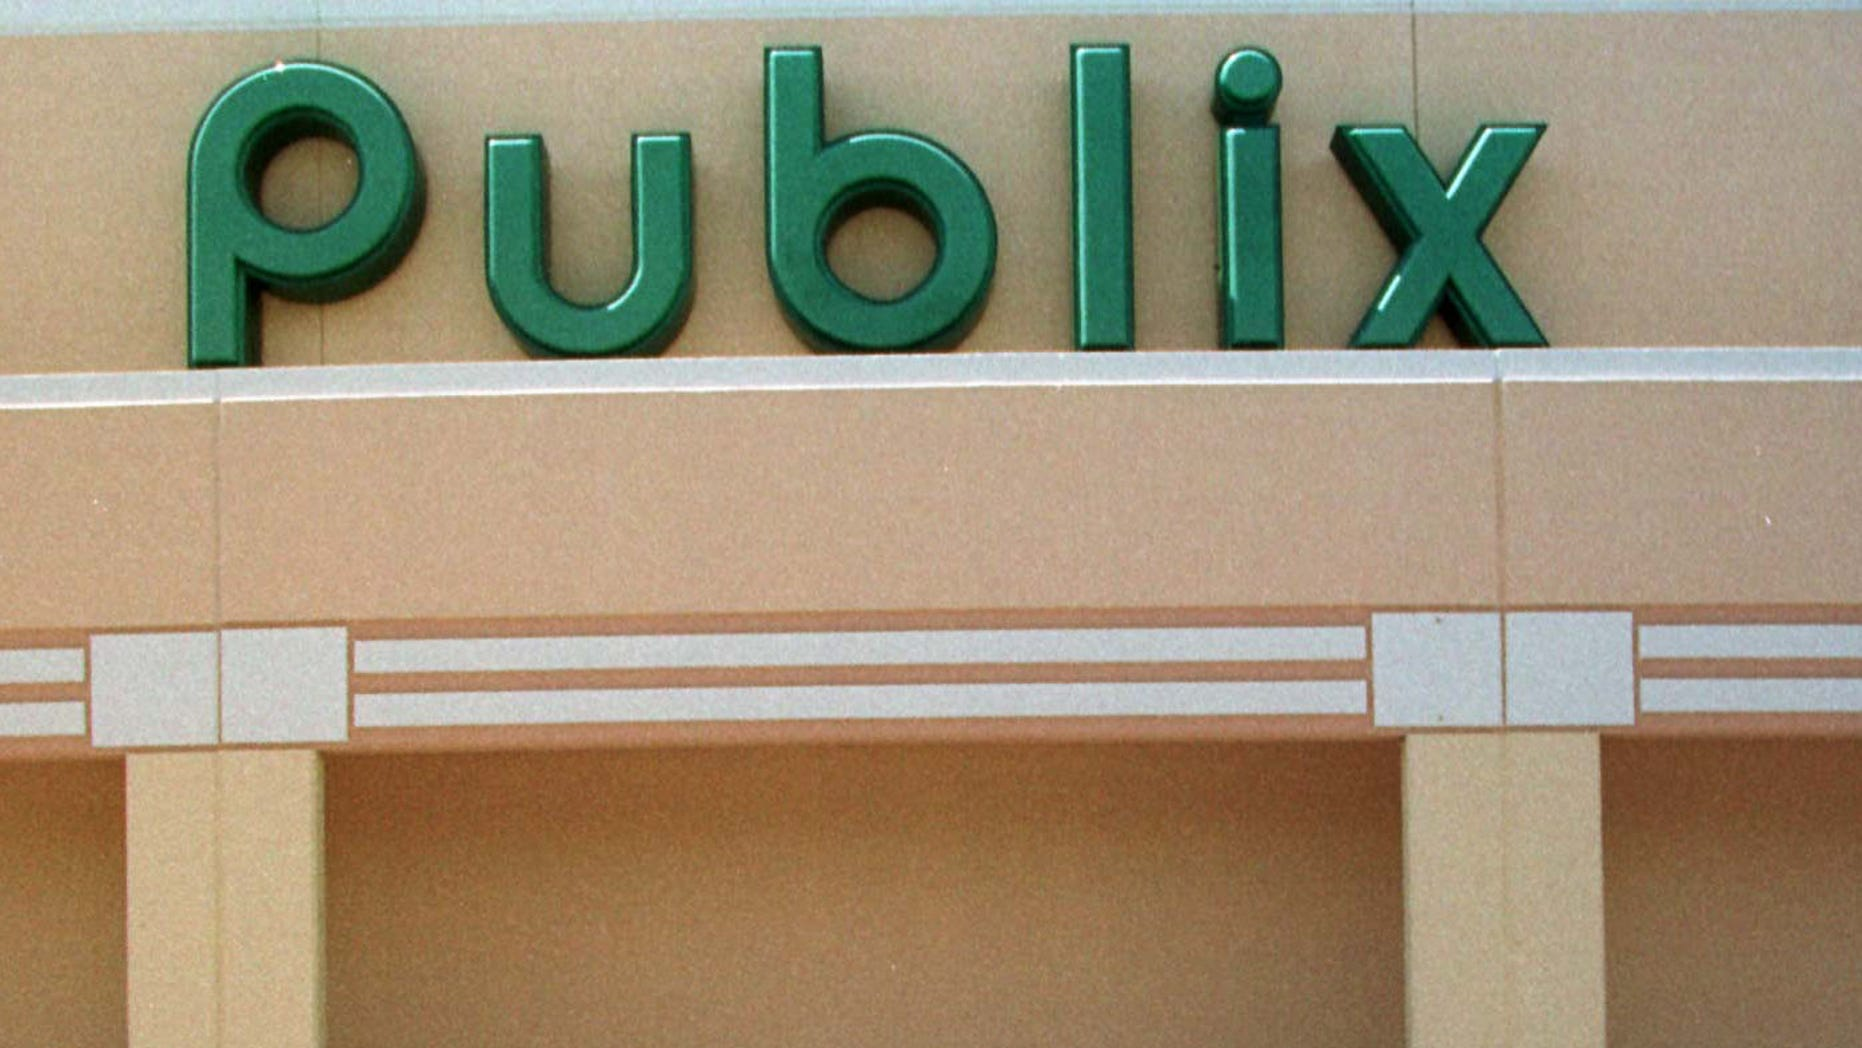 370990 07: ****EXCLUSIVE**** (MAGS MUST CALL) The grocery store Publix where George Trofimoff worked in Viera, Florida June 15, 2000. Trofimoff, of Melbourne, Florida, was arrested on charges that he engaged in a 25-year-long conspiracy to sell classified military intelligence information to the Soviet Union. (Photo by Robert King /Newsmakers)